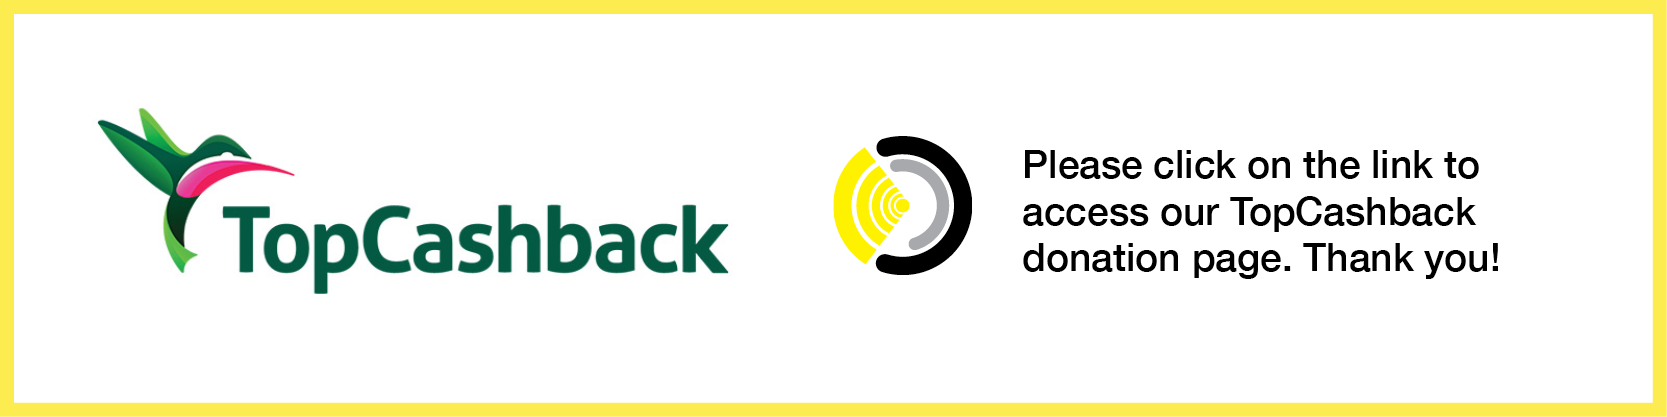 Please click on the link to access our TopCashback donation page. Thank you!